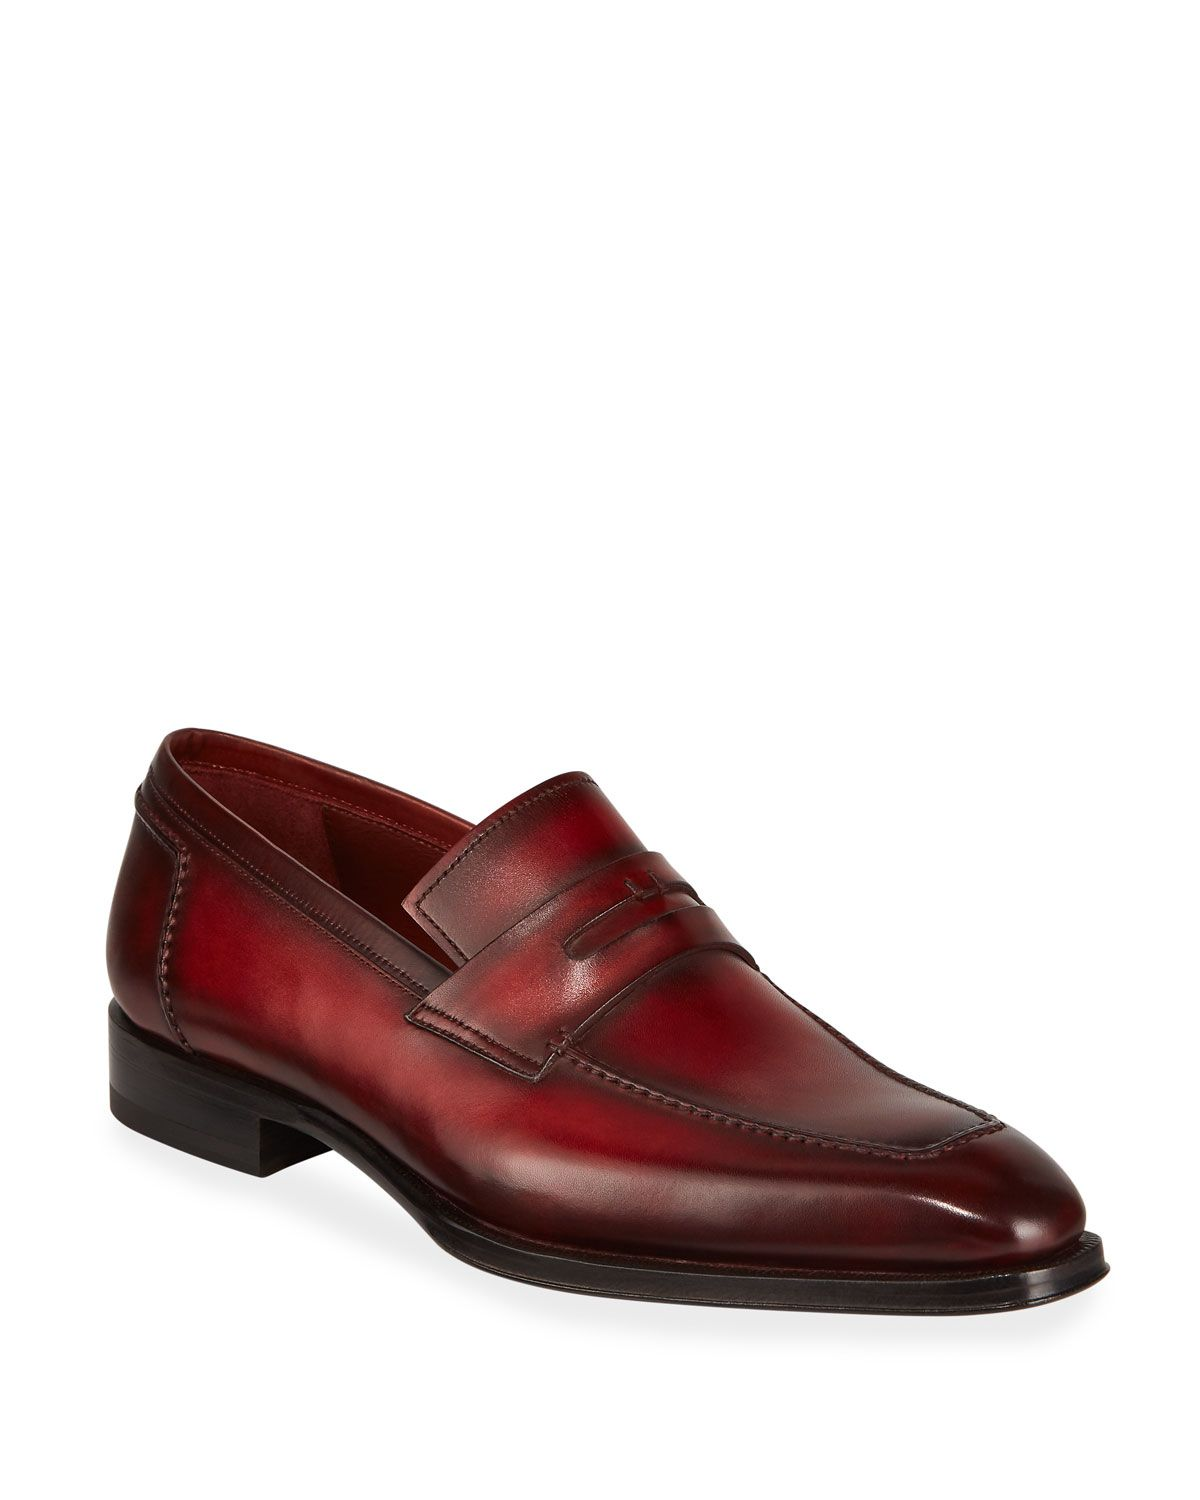 Neiman marcus men, Penny loafers, Loafers